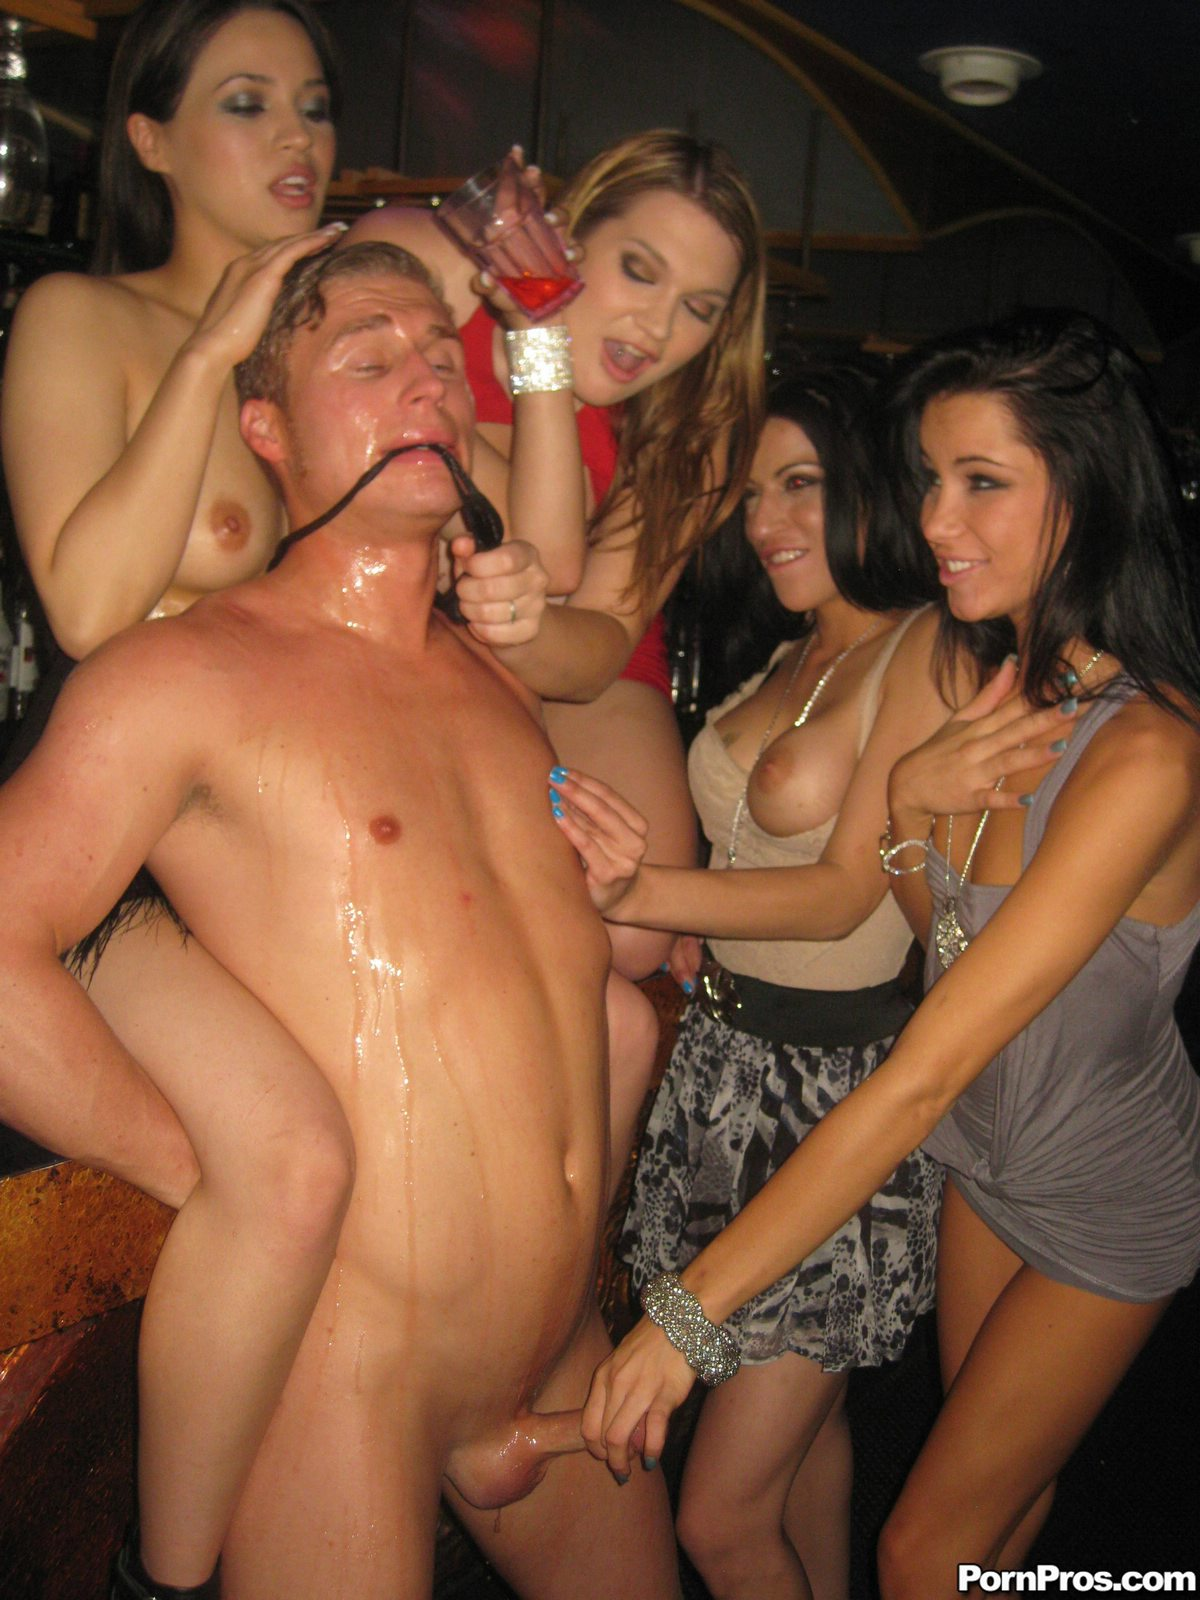 Stripper party porn